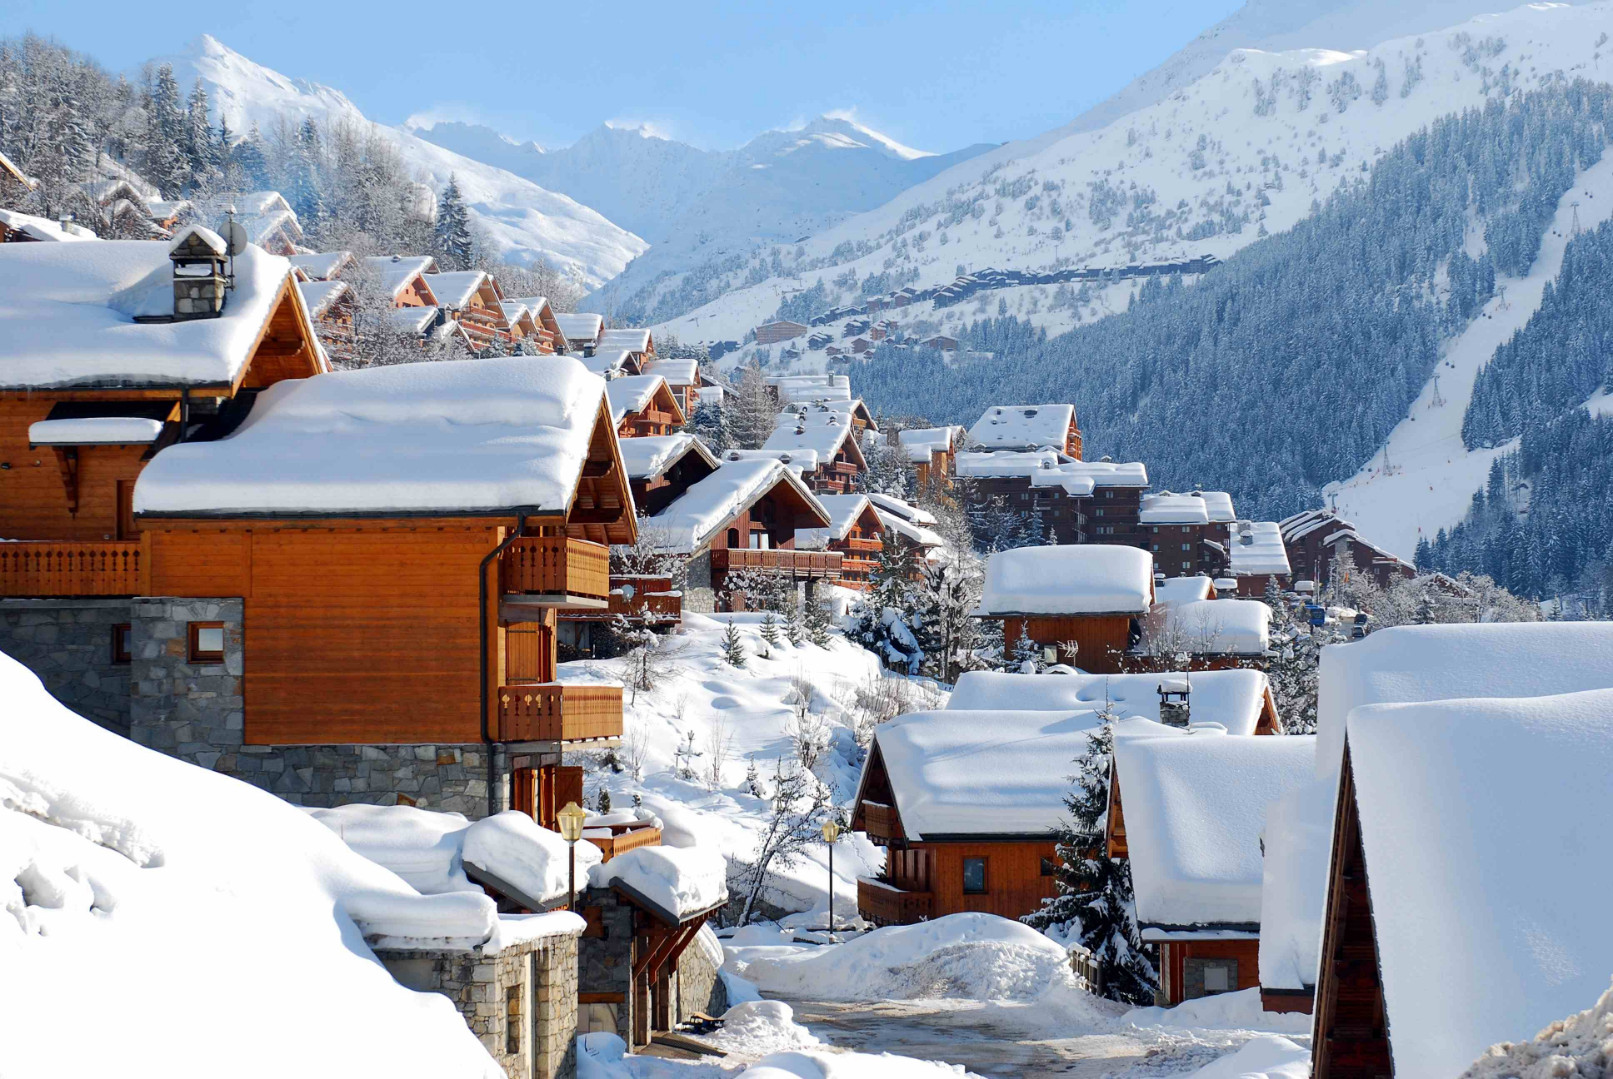 World___France_Wooden_house_in_the_ski_resort_of_Meribel__France_072072_